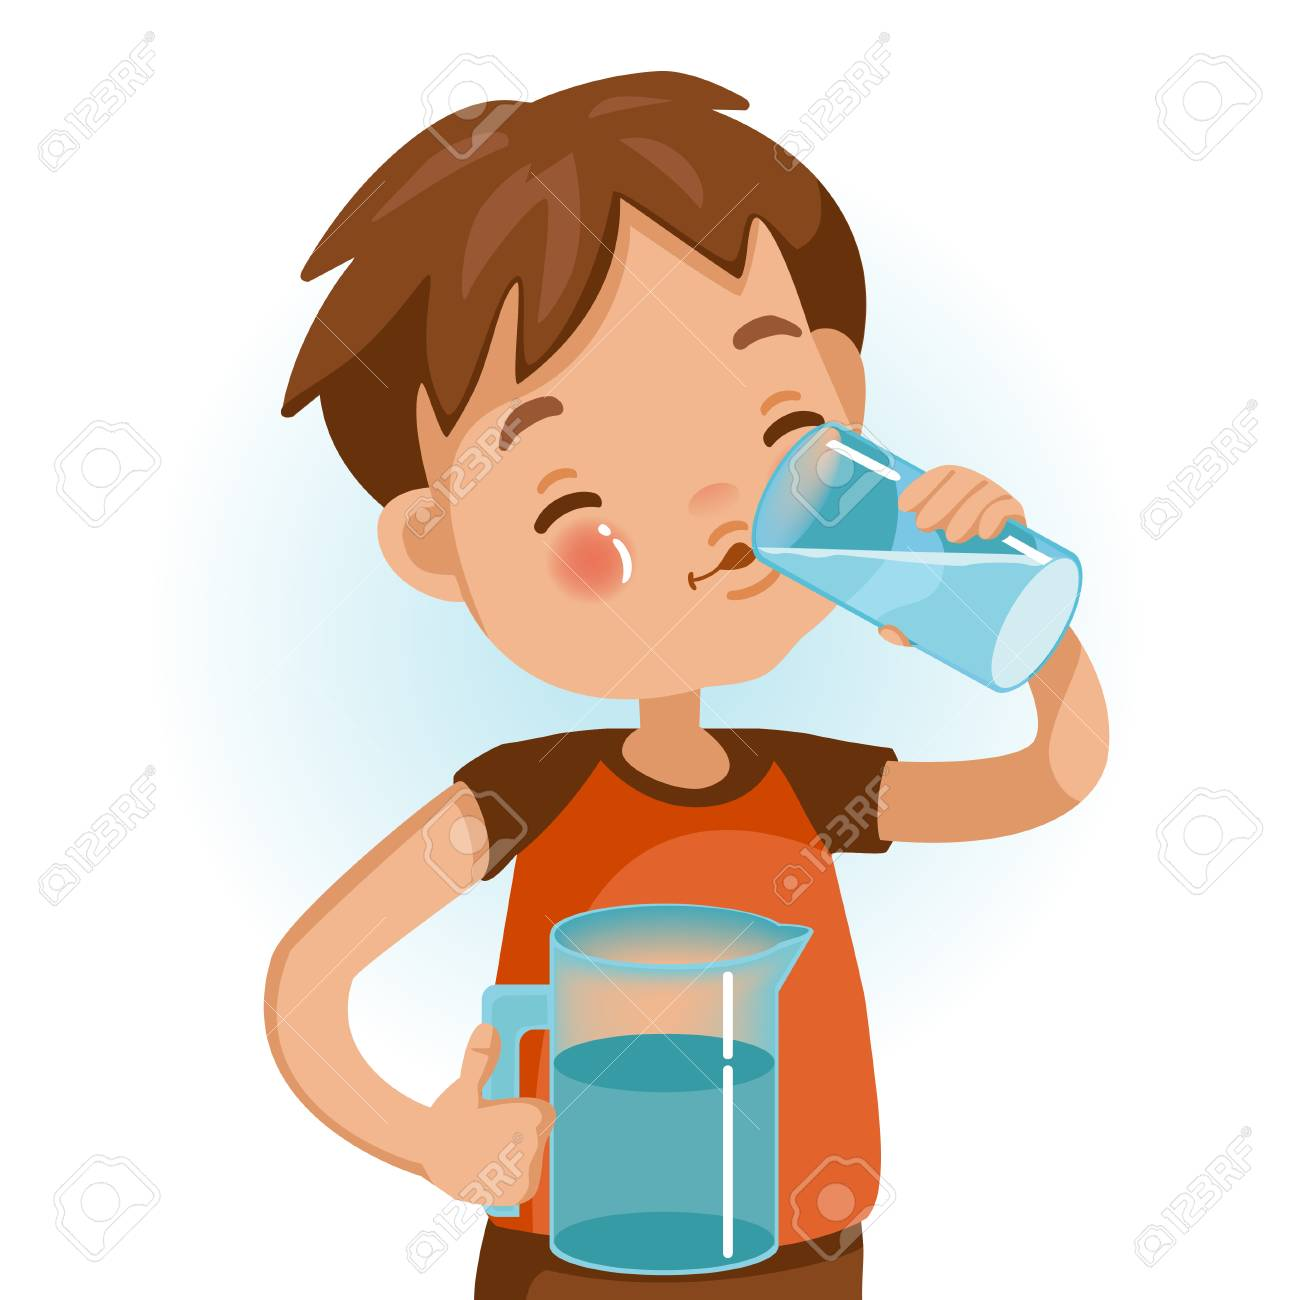 Cute boy in red shirt holding glass of kid drinking water. Emotionally be smile. Healthy concepts and growth in child nutrition. - 105746702